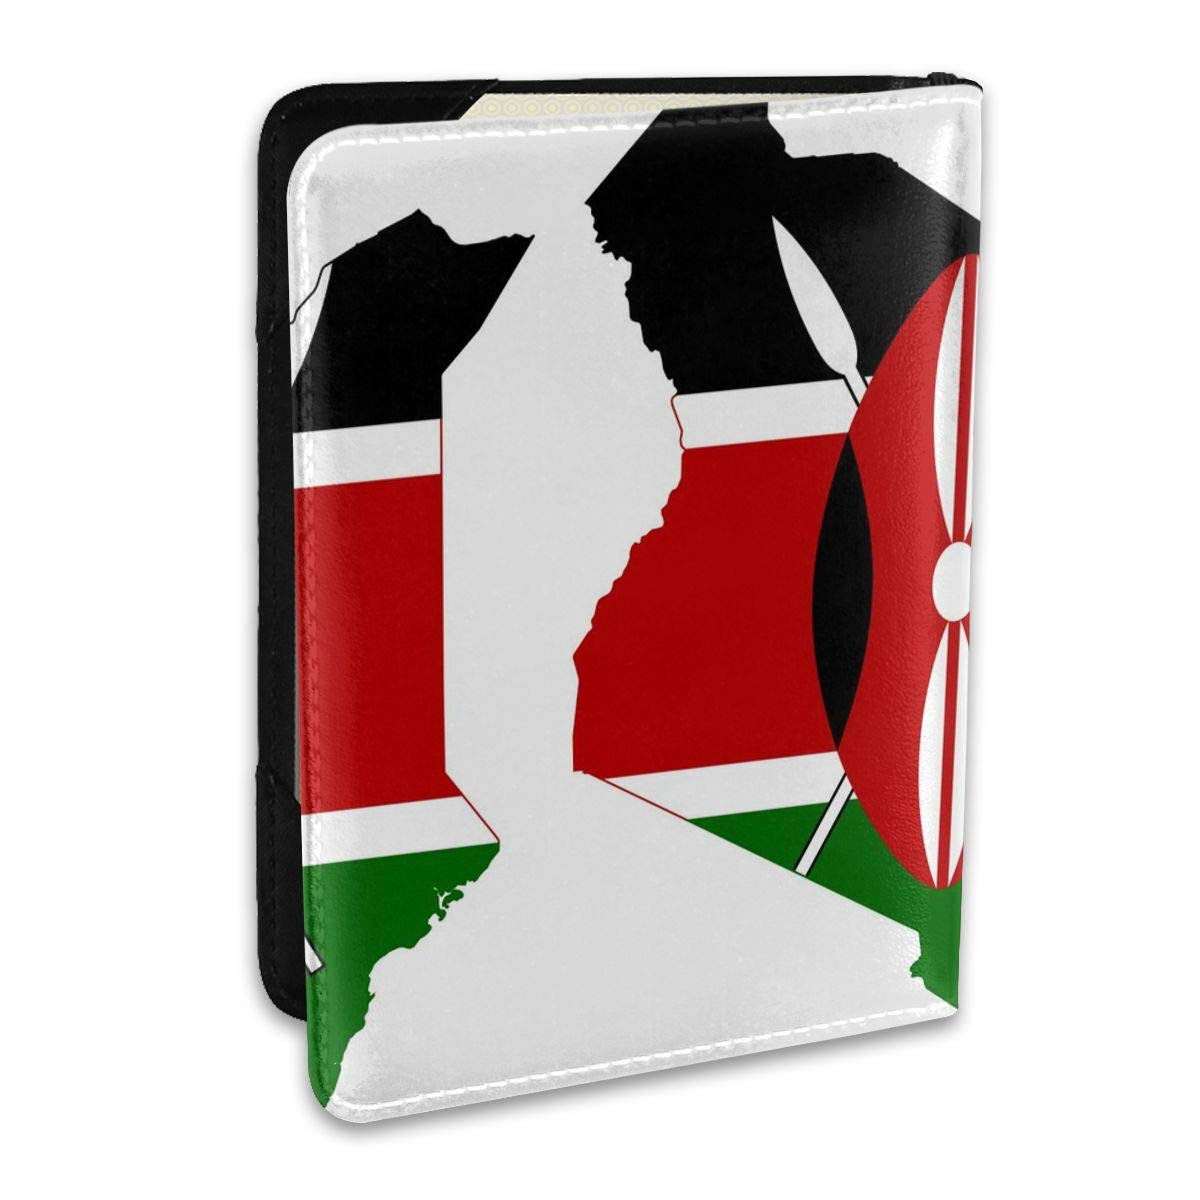 Large Flag Map Of Kenya Fashion Leather Passport Holder Cover Case Travel Wallet 6.5 In